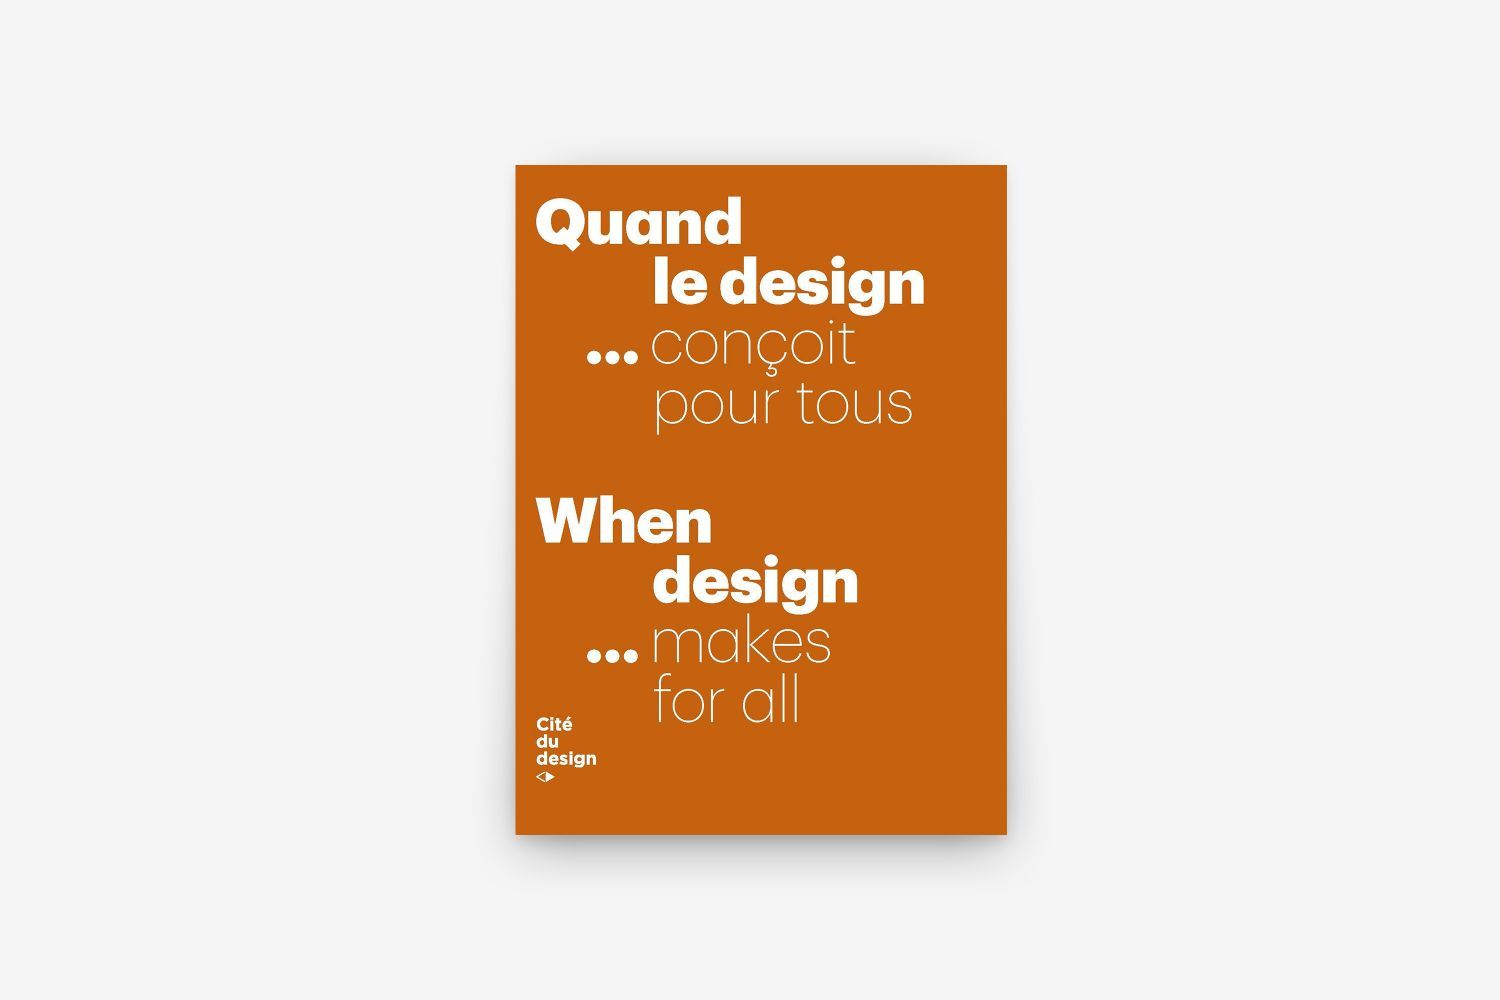 QUAND LE DESIGN... CONCOIT POUR TOUS / WHEN DESIGN MAKES FOR ALL